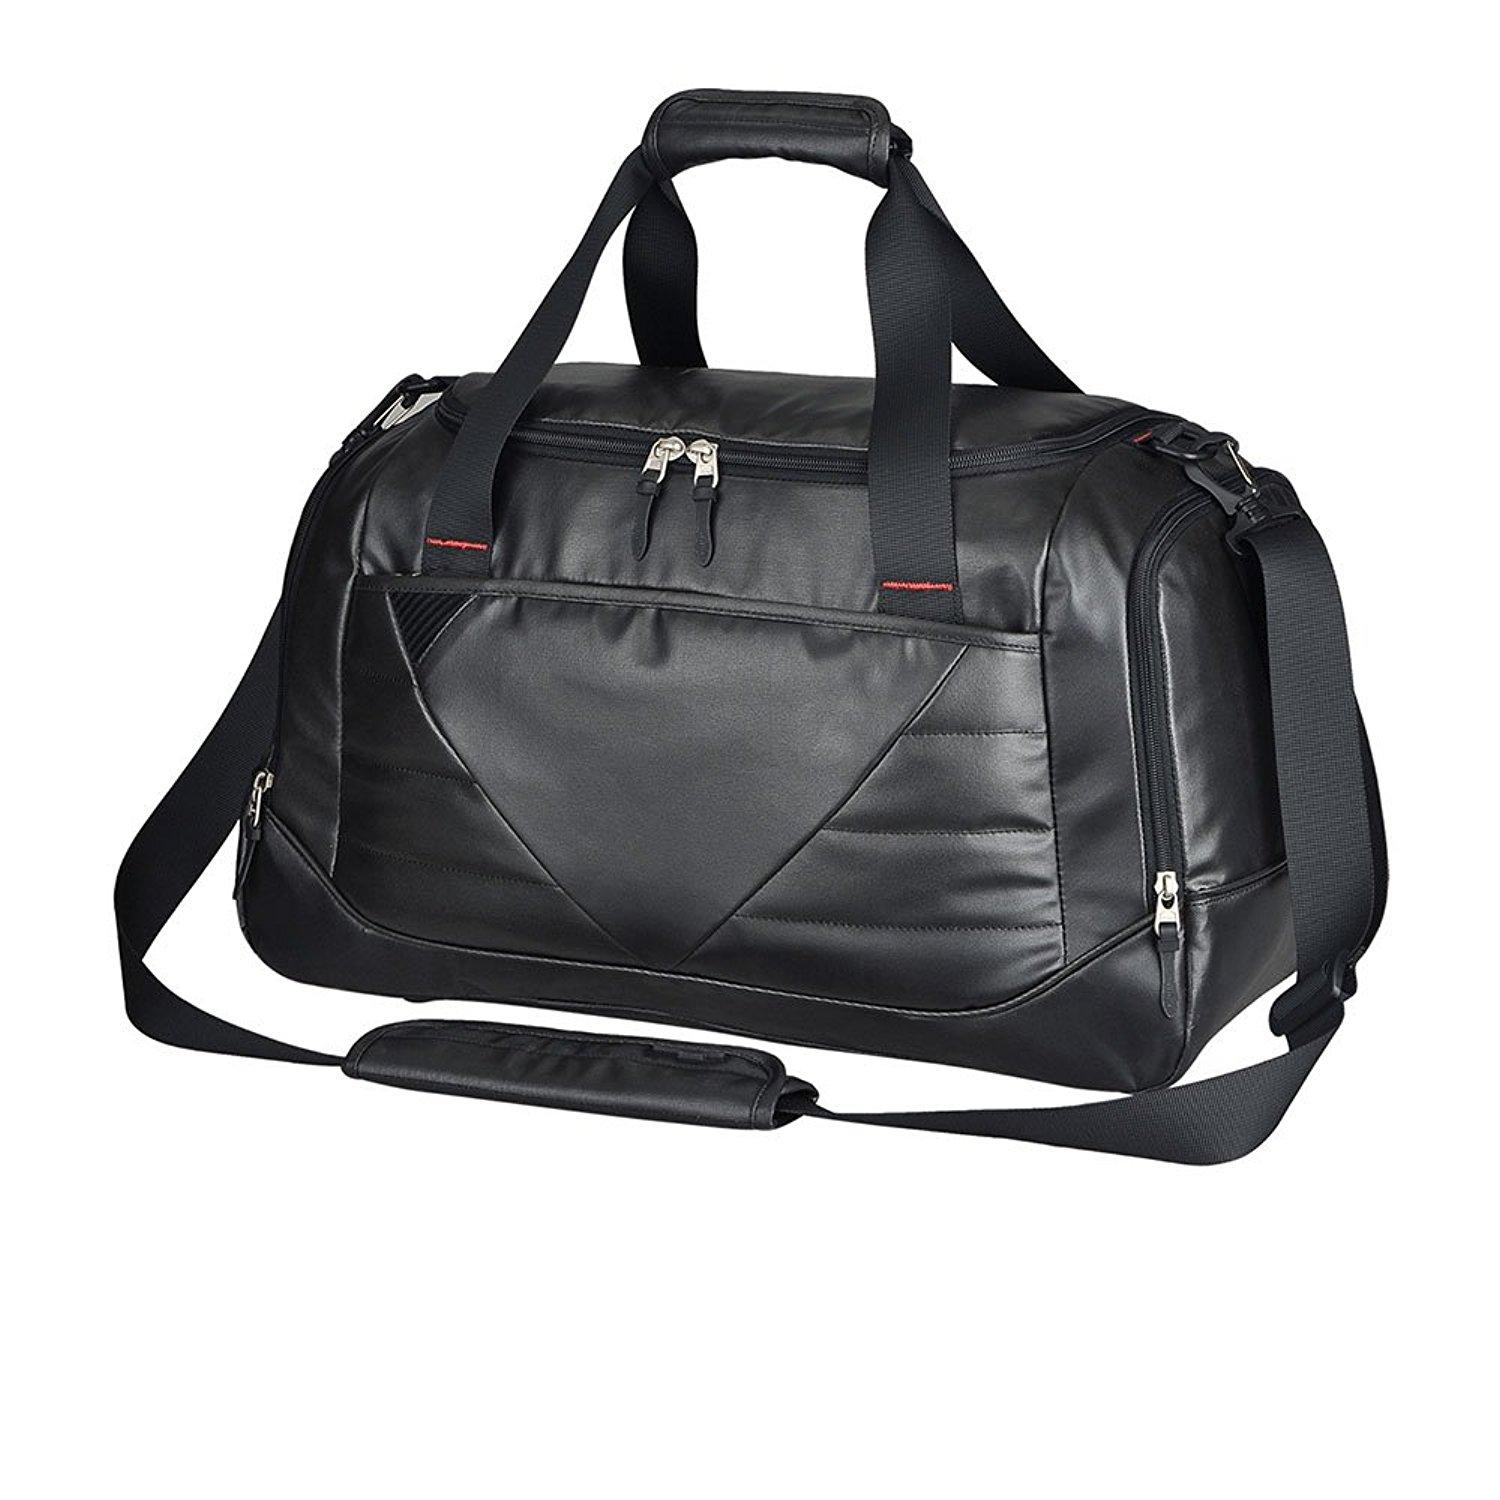 Travel Duffel Luggage Bag, Durable Carry on Luggage Tote Bag for Traveling, Overnight, Gym foe Men/Women